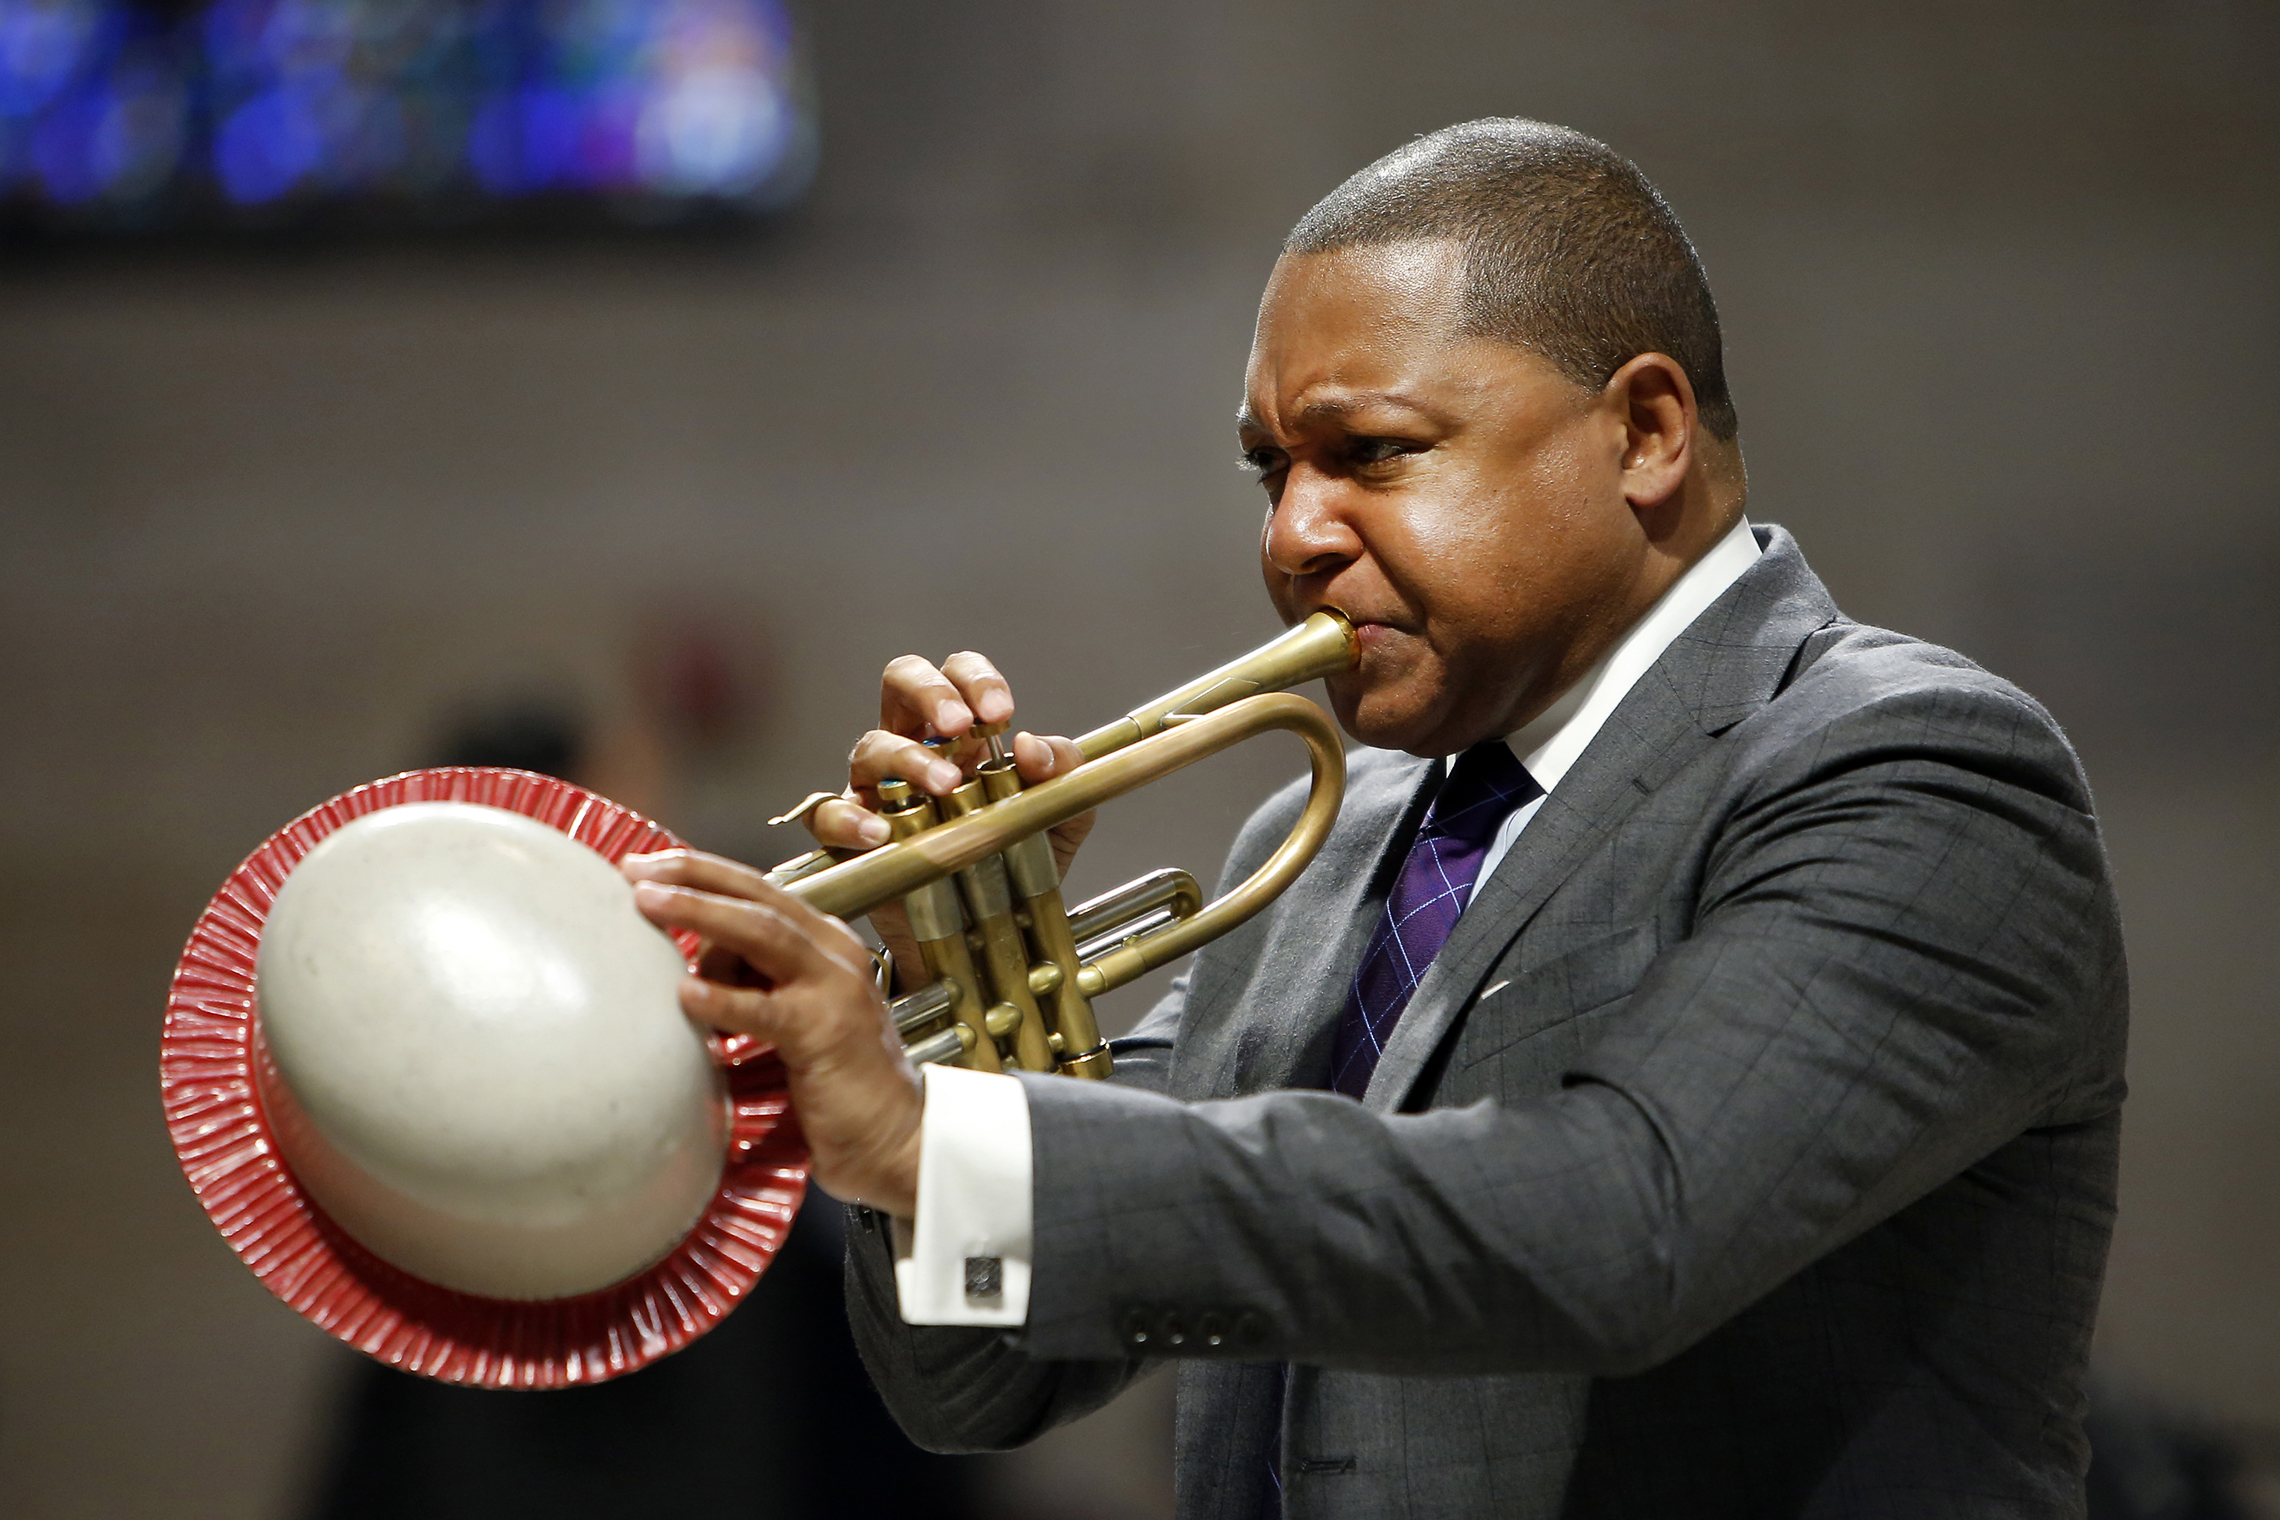 2014: Wynton Marsalis performs during a memorial service for actress Ruby Dee at The Riverside Church in New York. (AP Photo/Jason DeCrow, File)